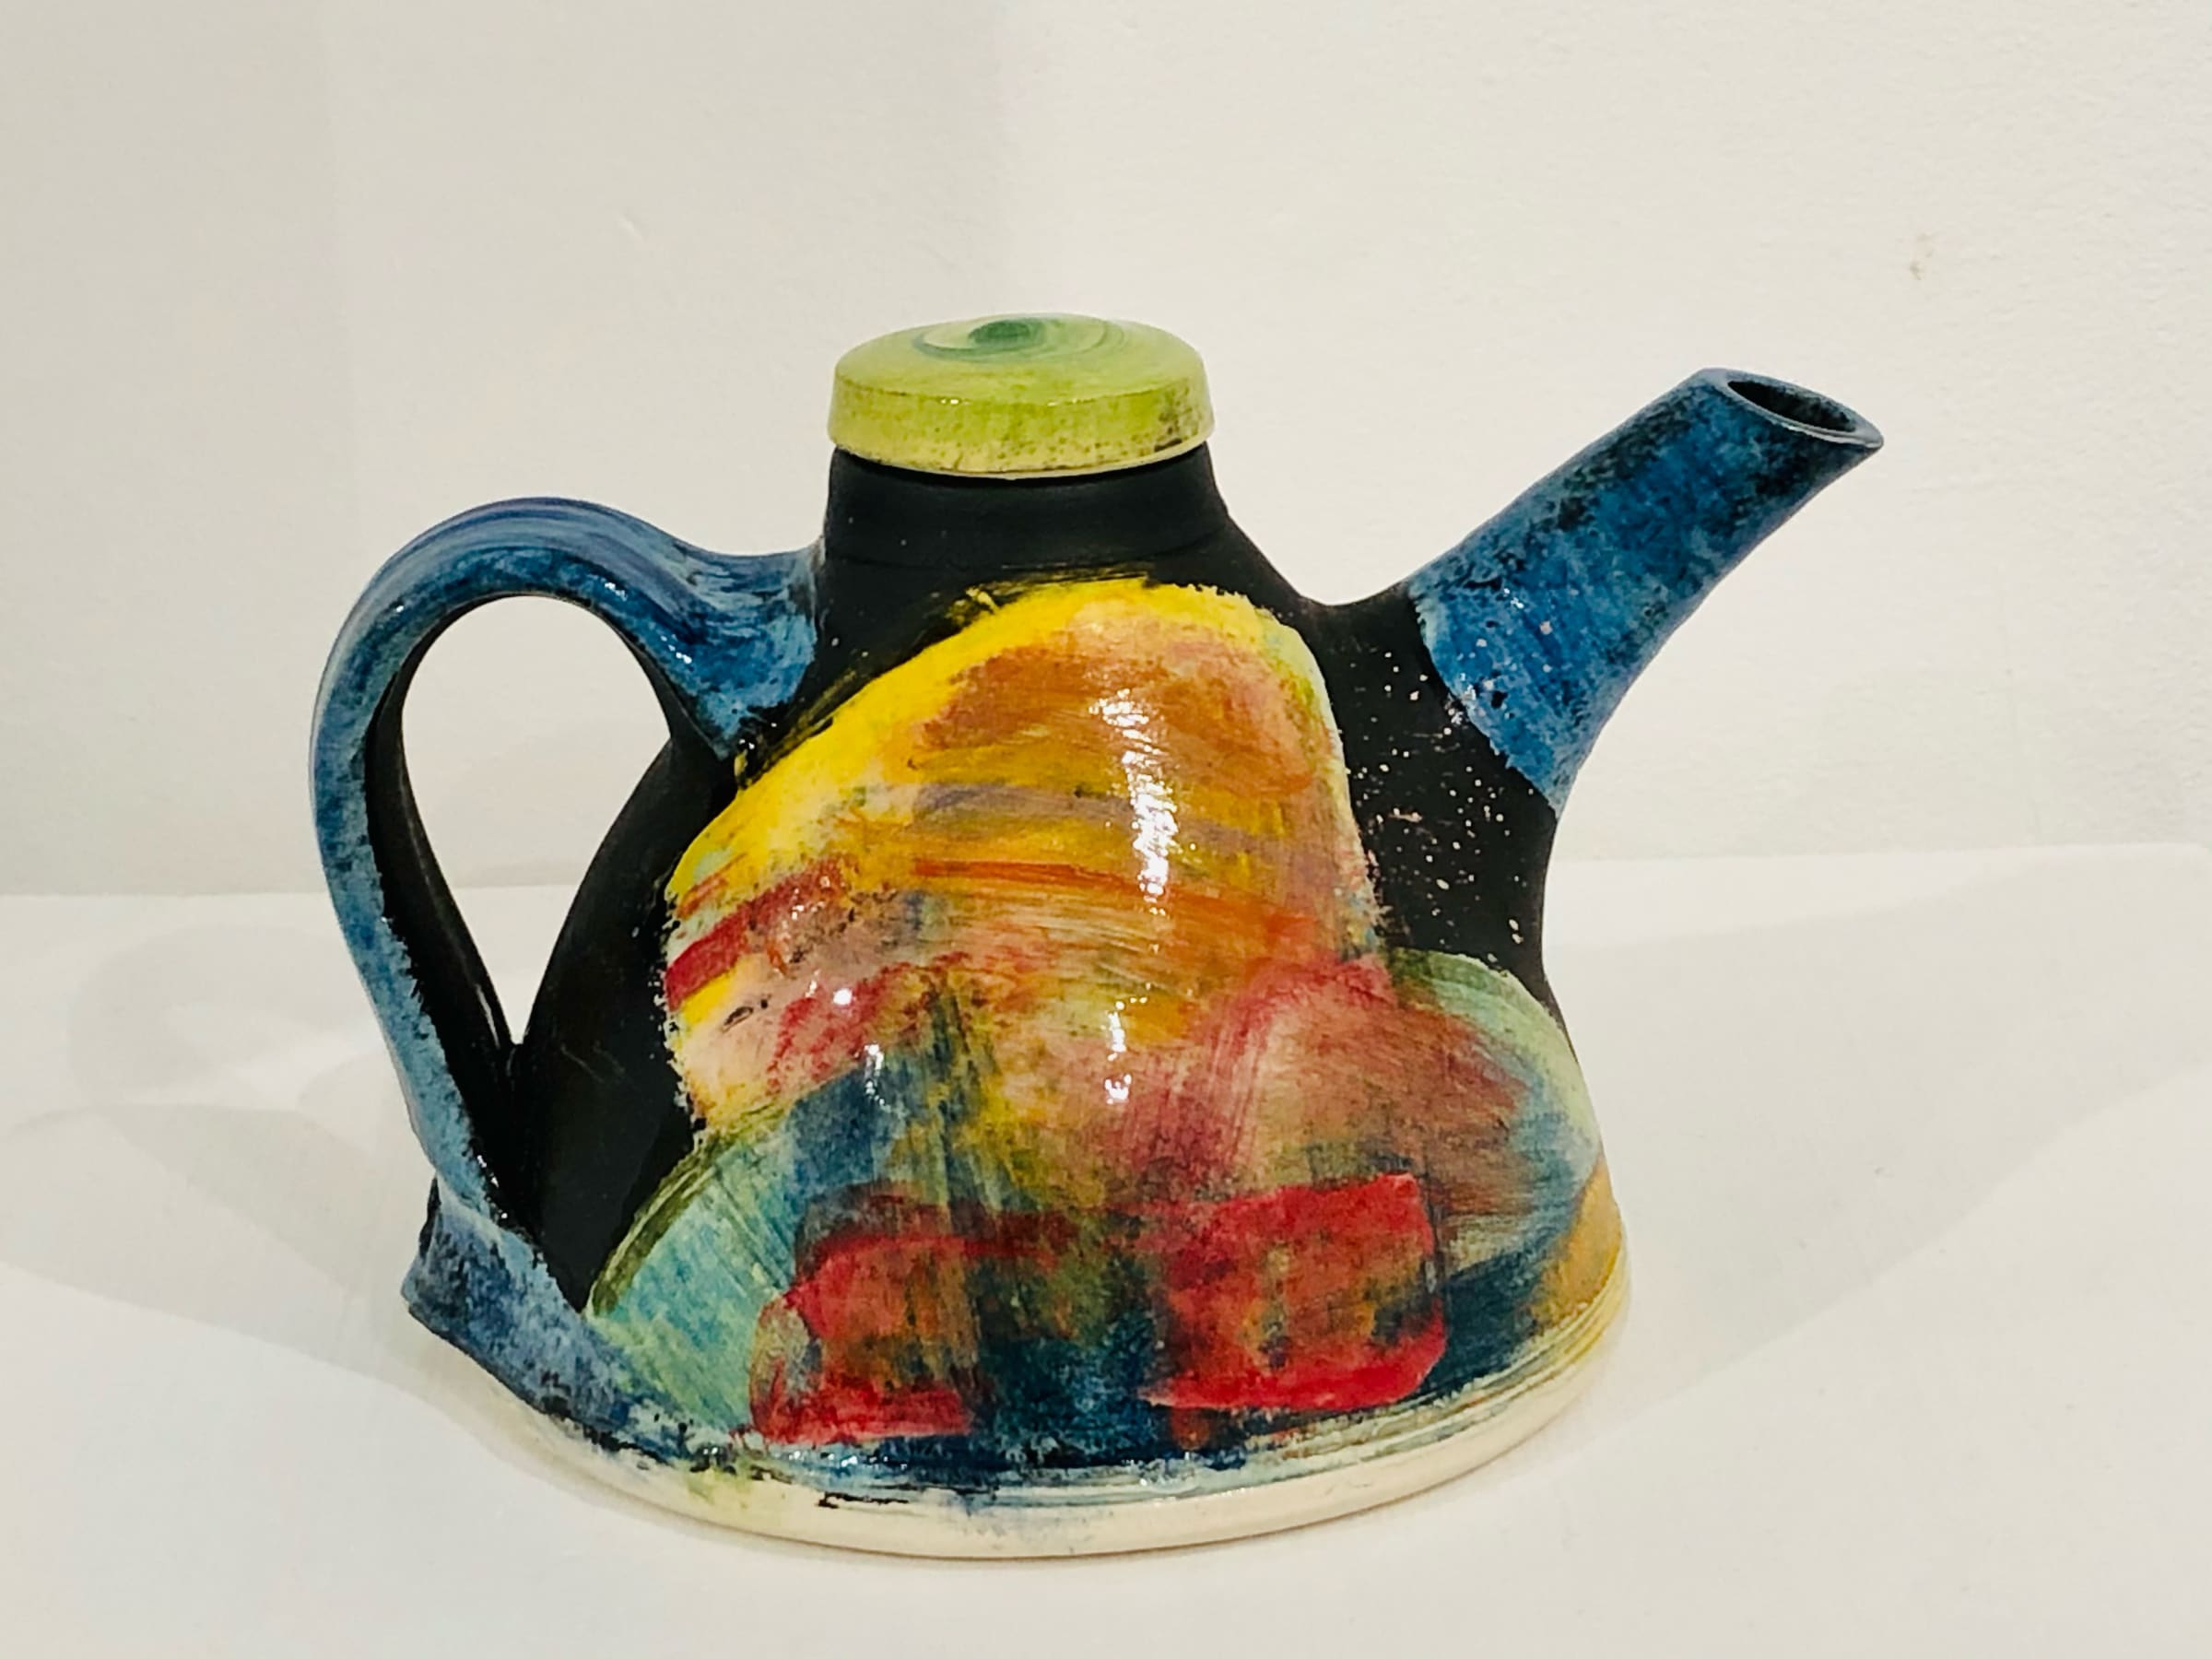 """<span class=""""link fancybox-details-link""""><a href=""""/artists/100-john-pollex/works/7417-john-pollex-teapot-2020/"""">View Detail Page</a></span><div class=""""artist""""><strong>John Pollex</strong></div> b. 1941 <div class=""""title""""><em>Teapot</em>, 2020</div> <div class=""""signed_and_dated"""">impressed with the artist's seal mark 'JP'</div> <div class=""""medium"""">white earthenware decorated with coloured slips</div><div class=""""copyright_line"""">£22 x 10 month 0% APR</div>"""